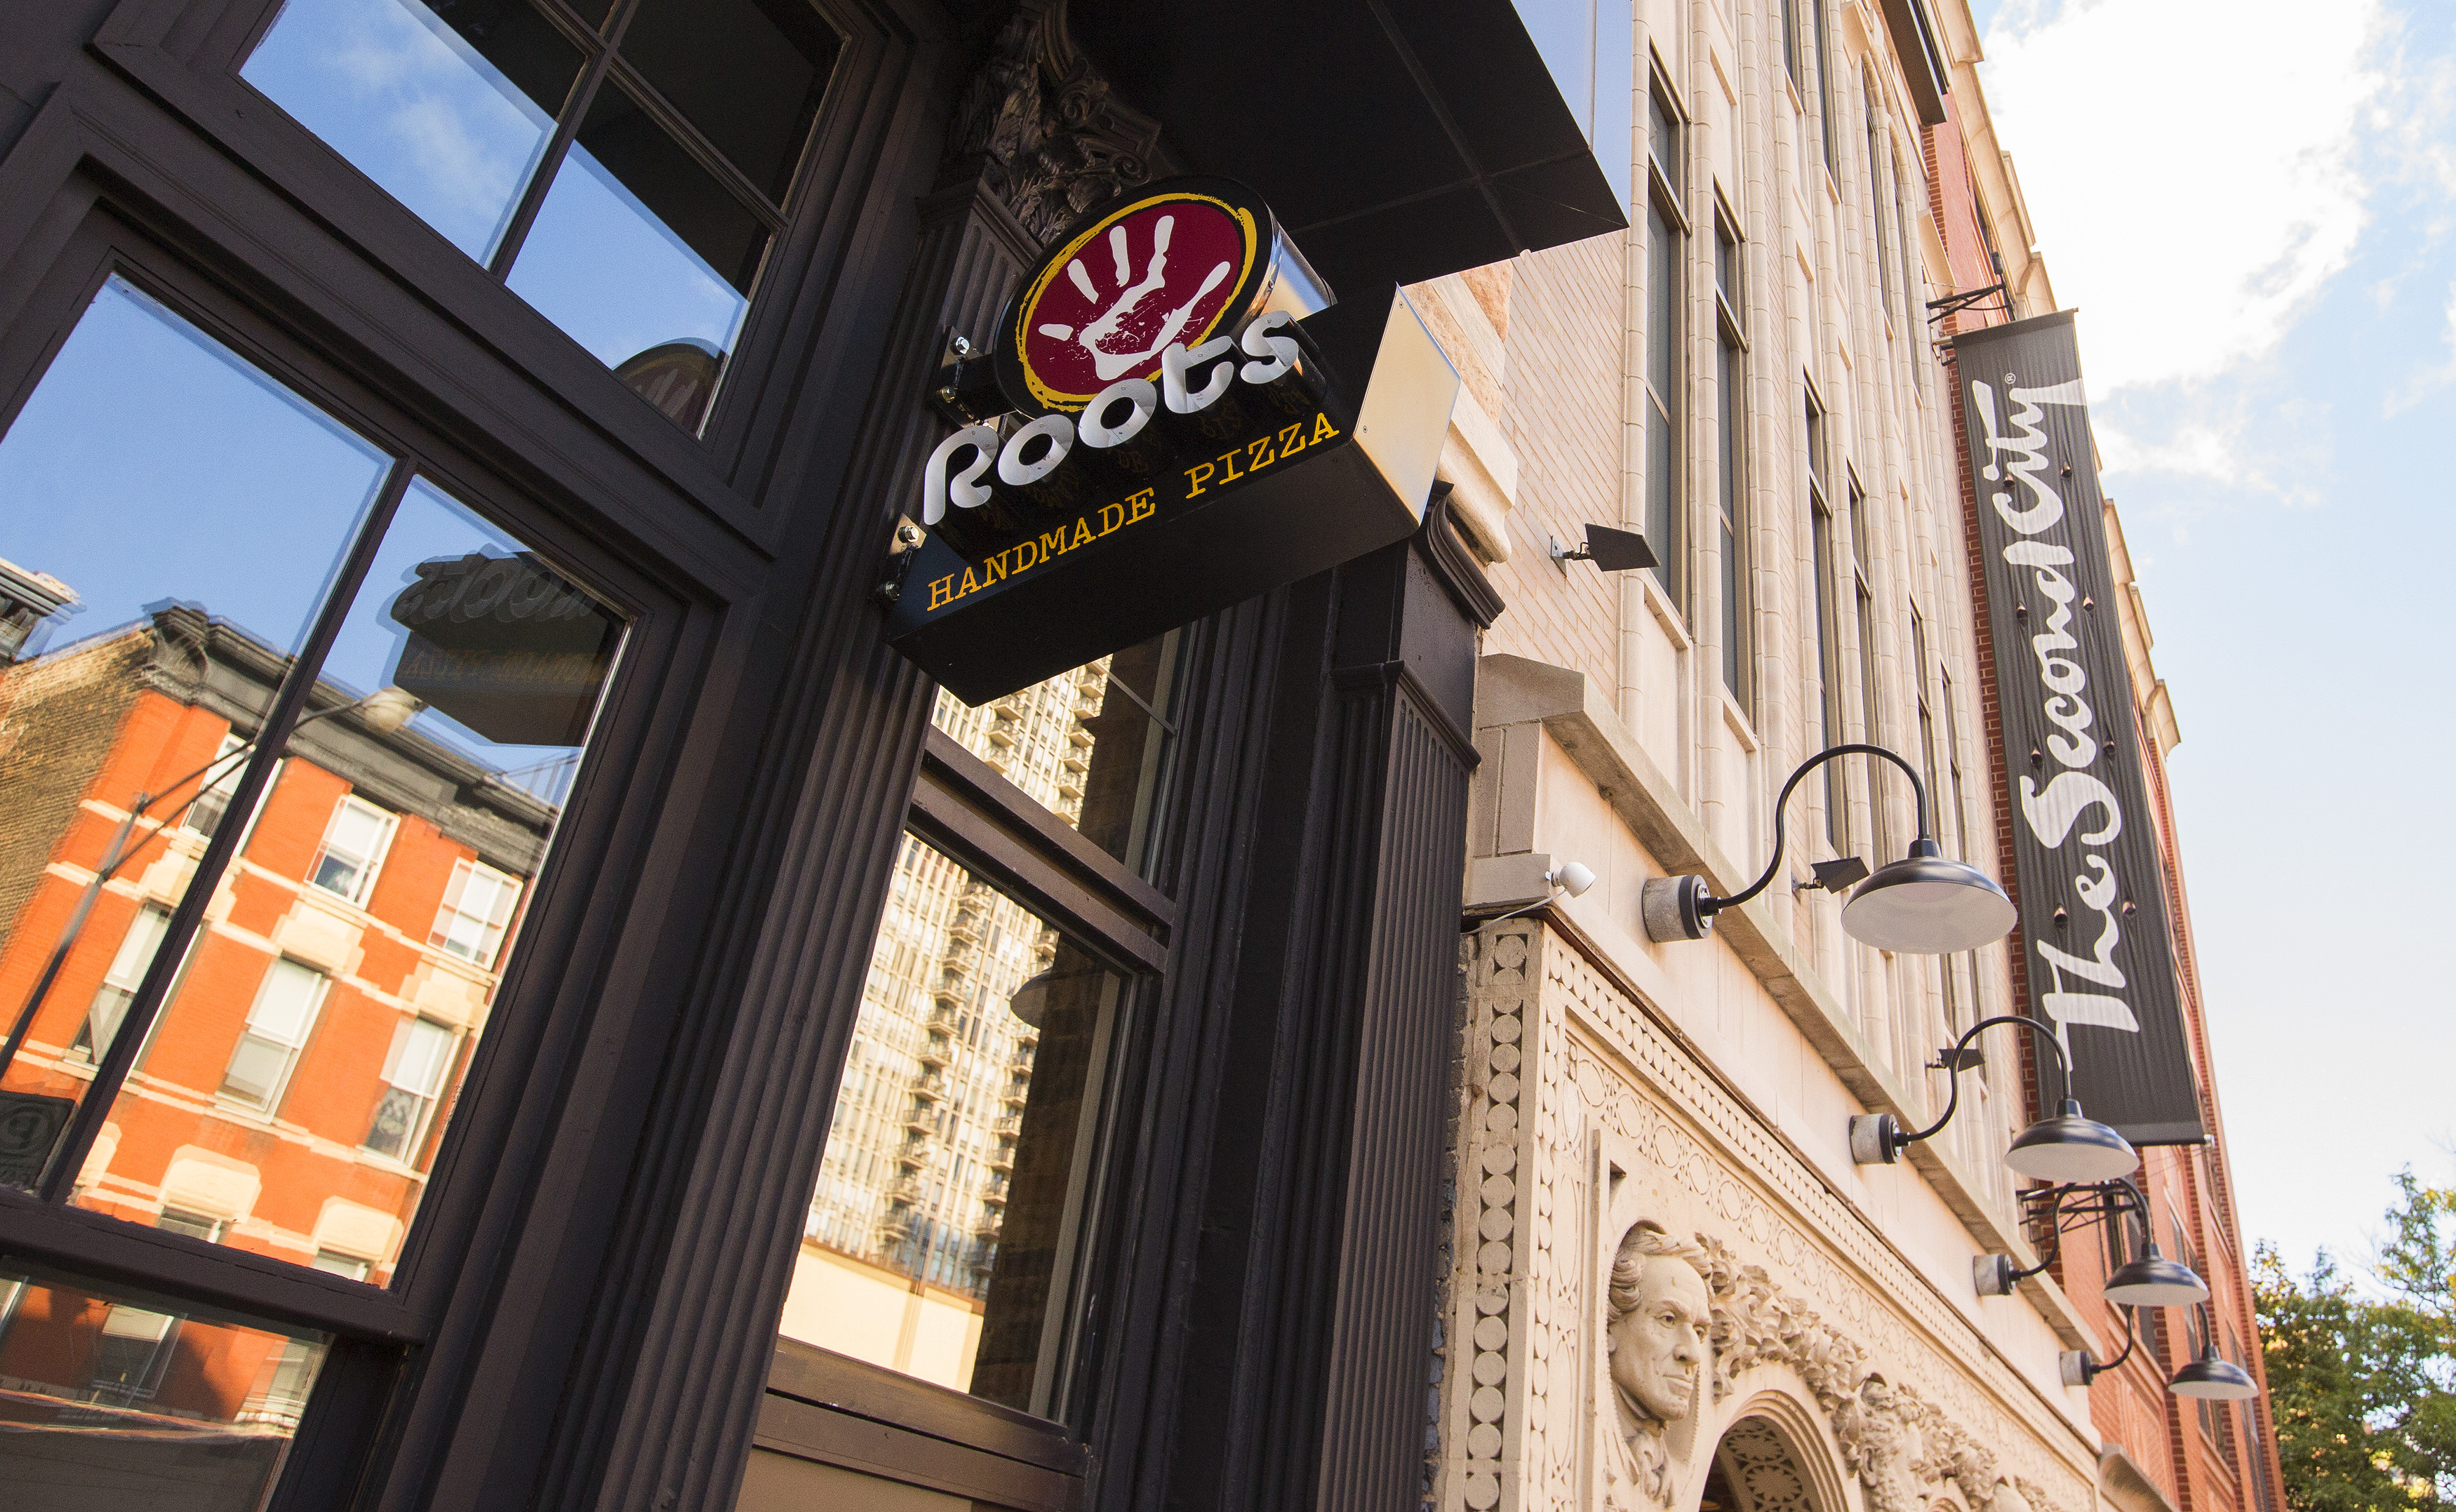 The exterior of Roots Pizza.